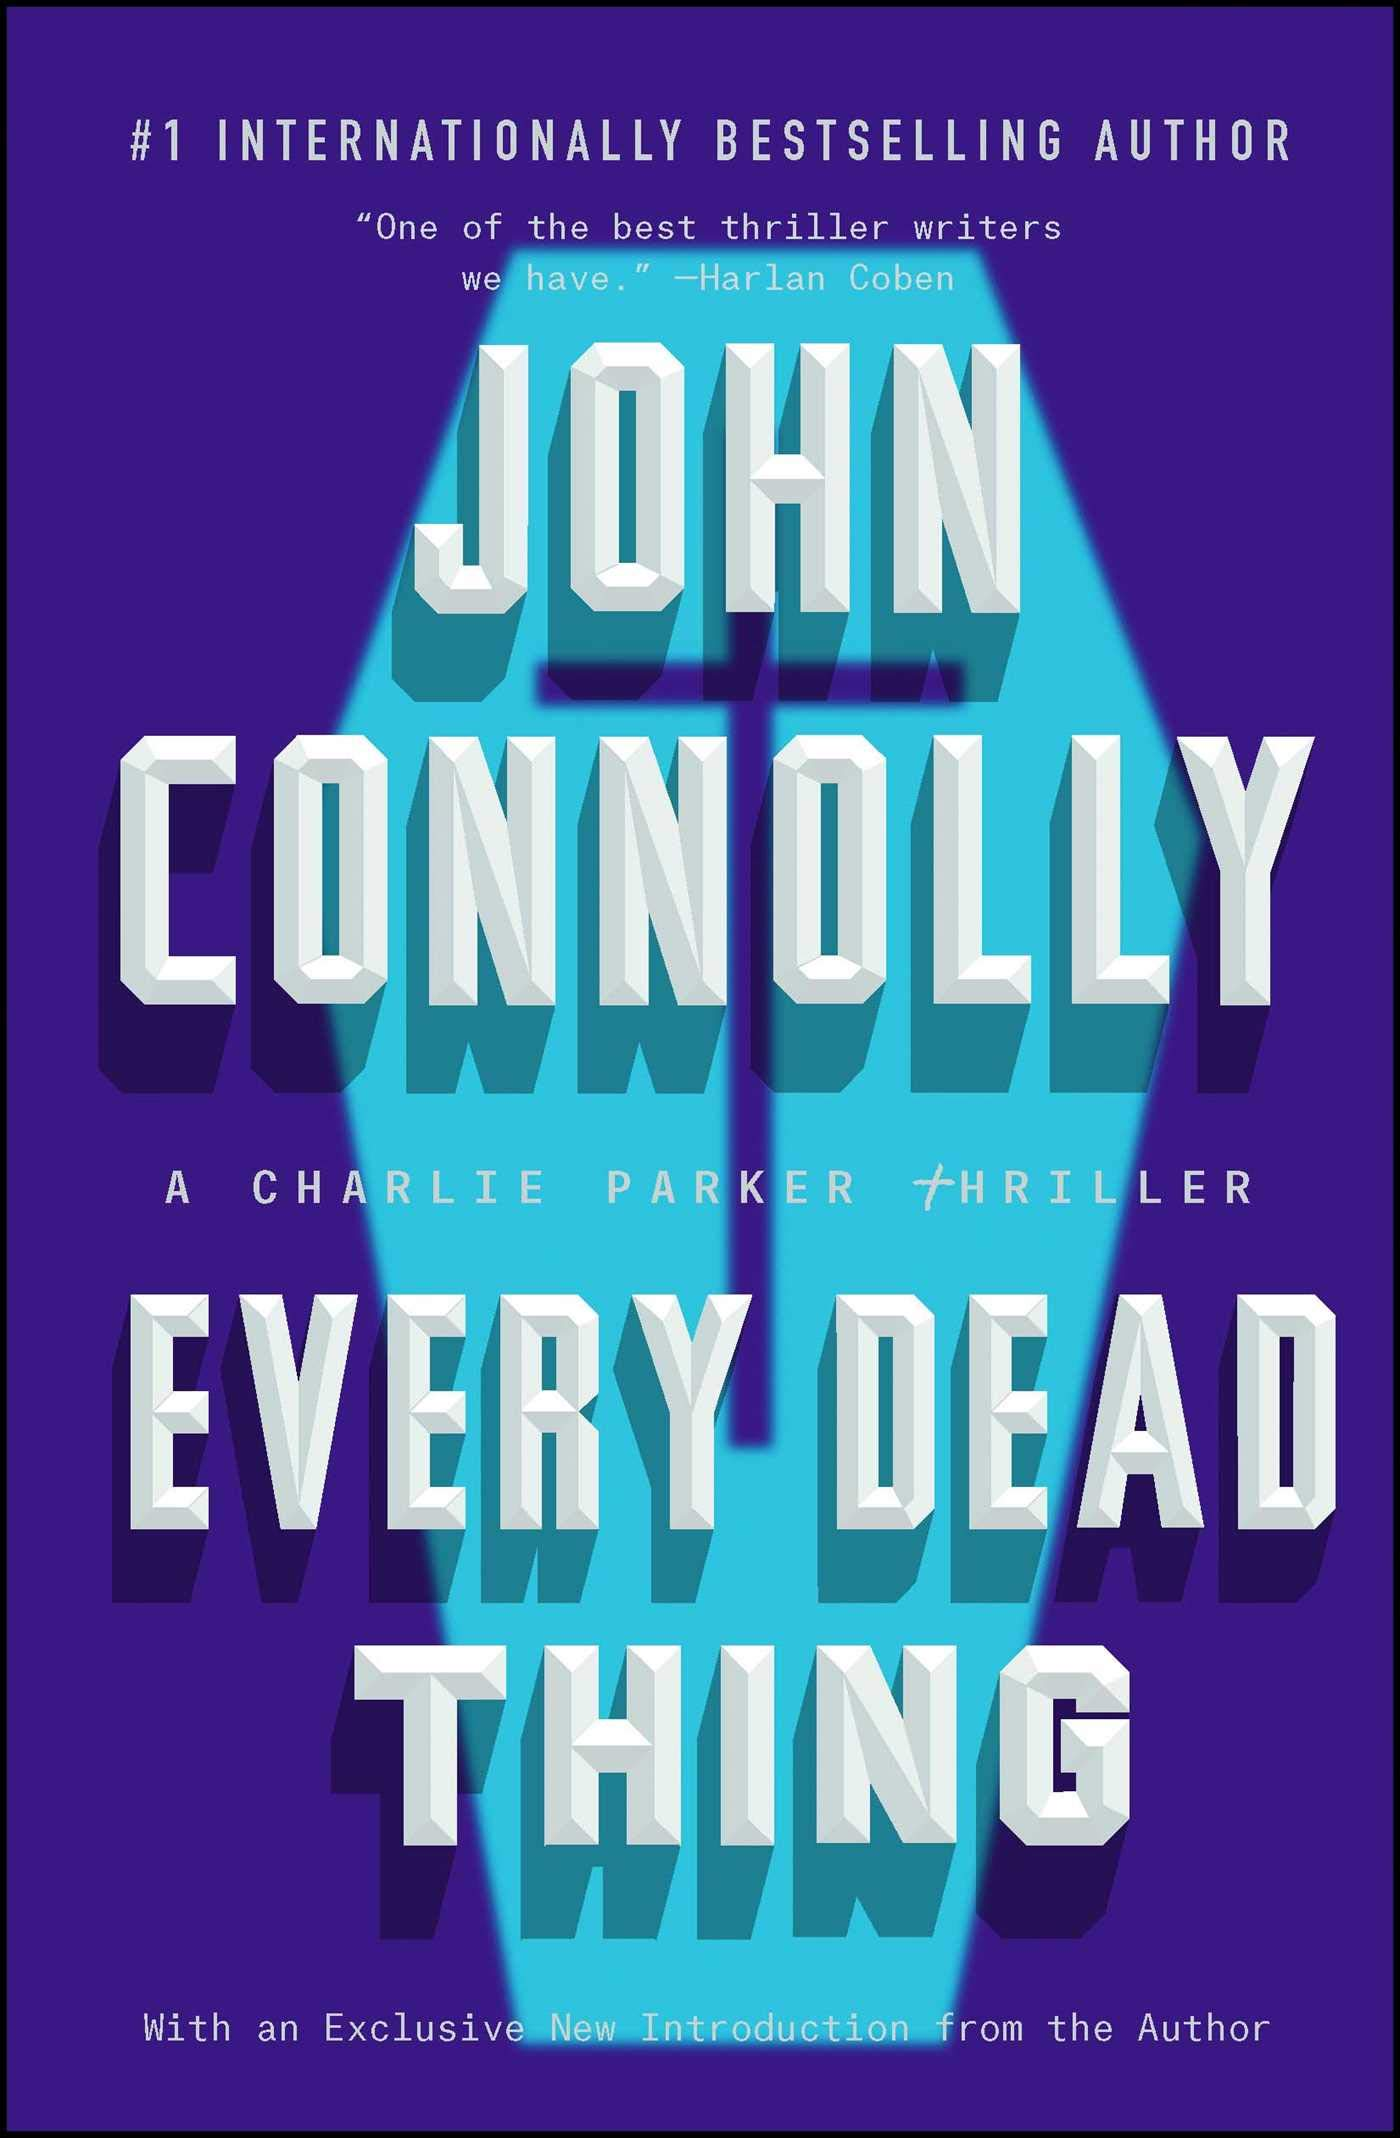 Amazon.com: Every Dead Thing: A Charlie Parker Thriller (9781501122620):  John Connolly: Books